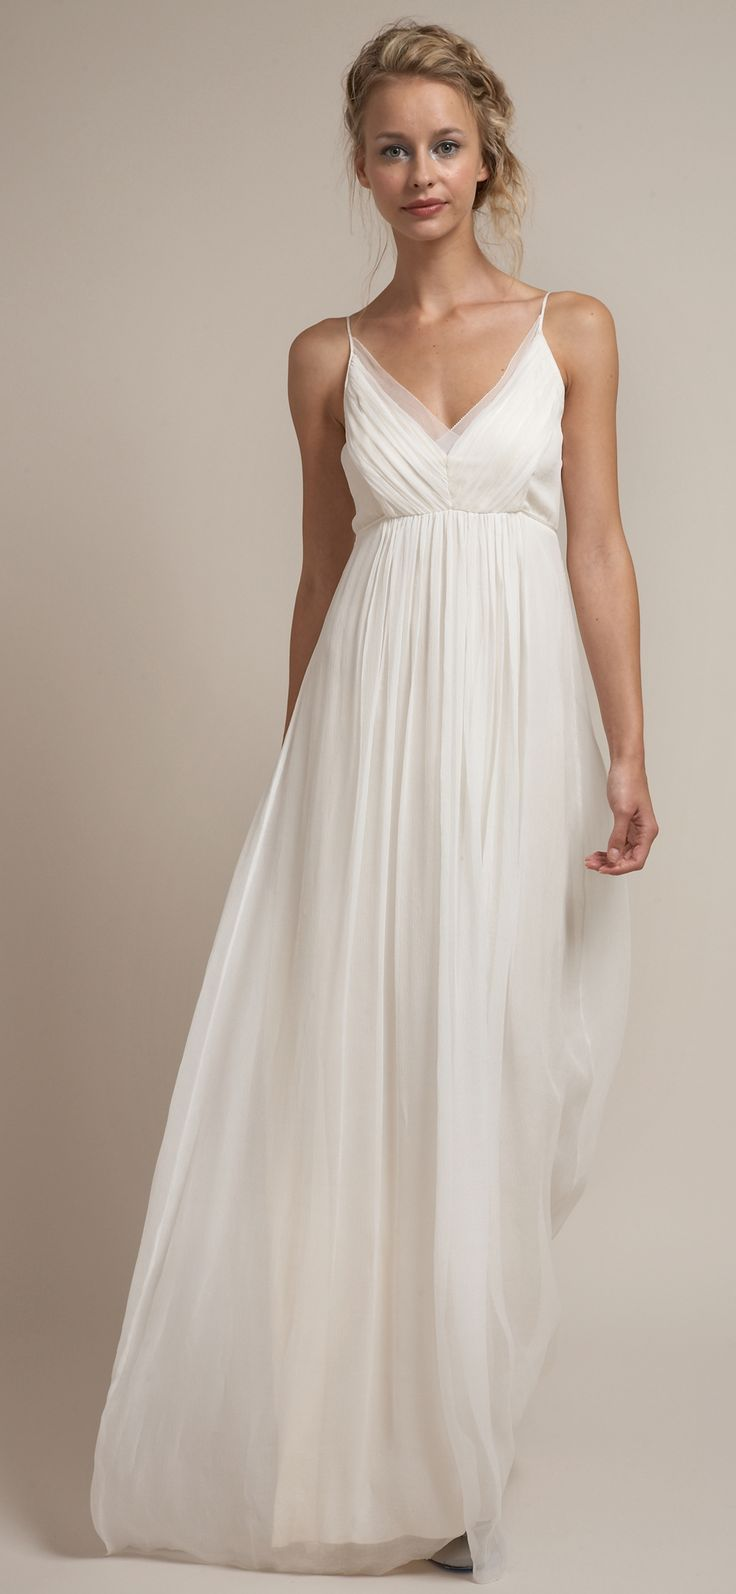 25+ Best Ideas About Simple Beach Wedding Dresses On